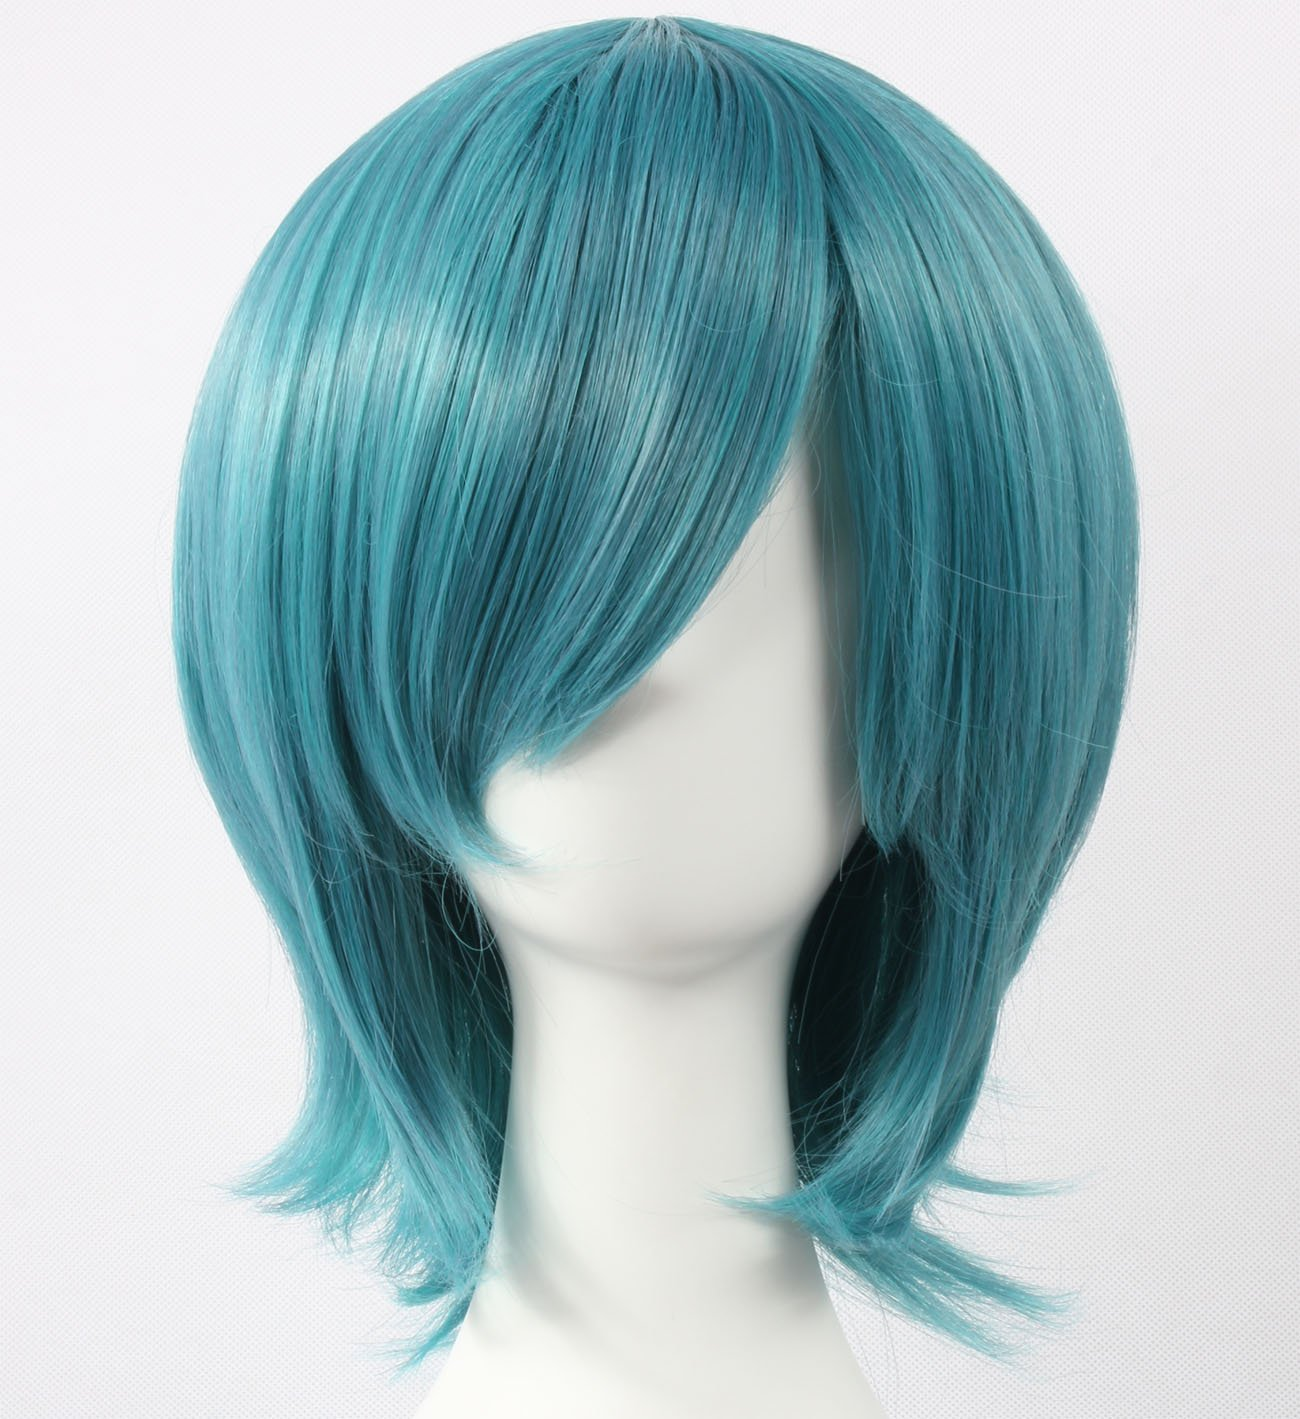 Coolsky Wig Dark Blue Wig Short Dark Blue Straight Wig Kasodani Kyouko Touhou